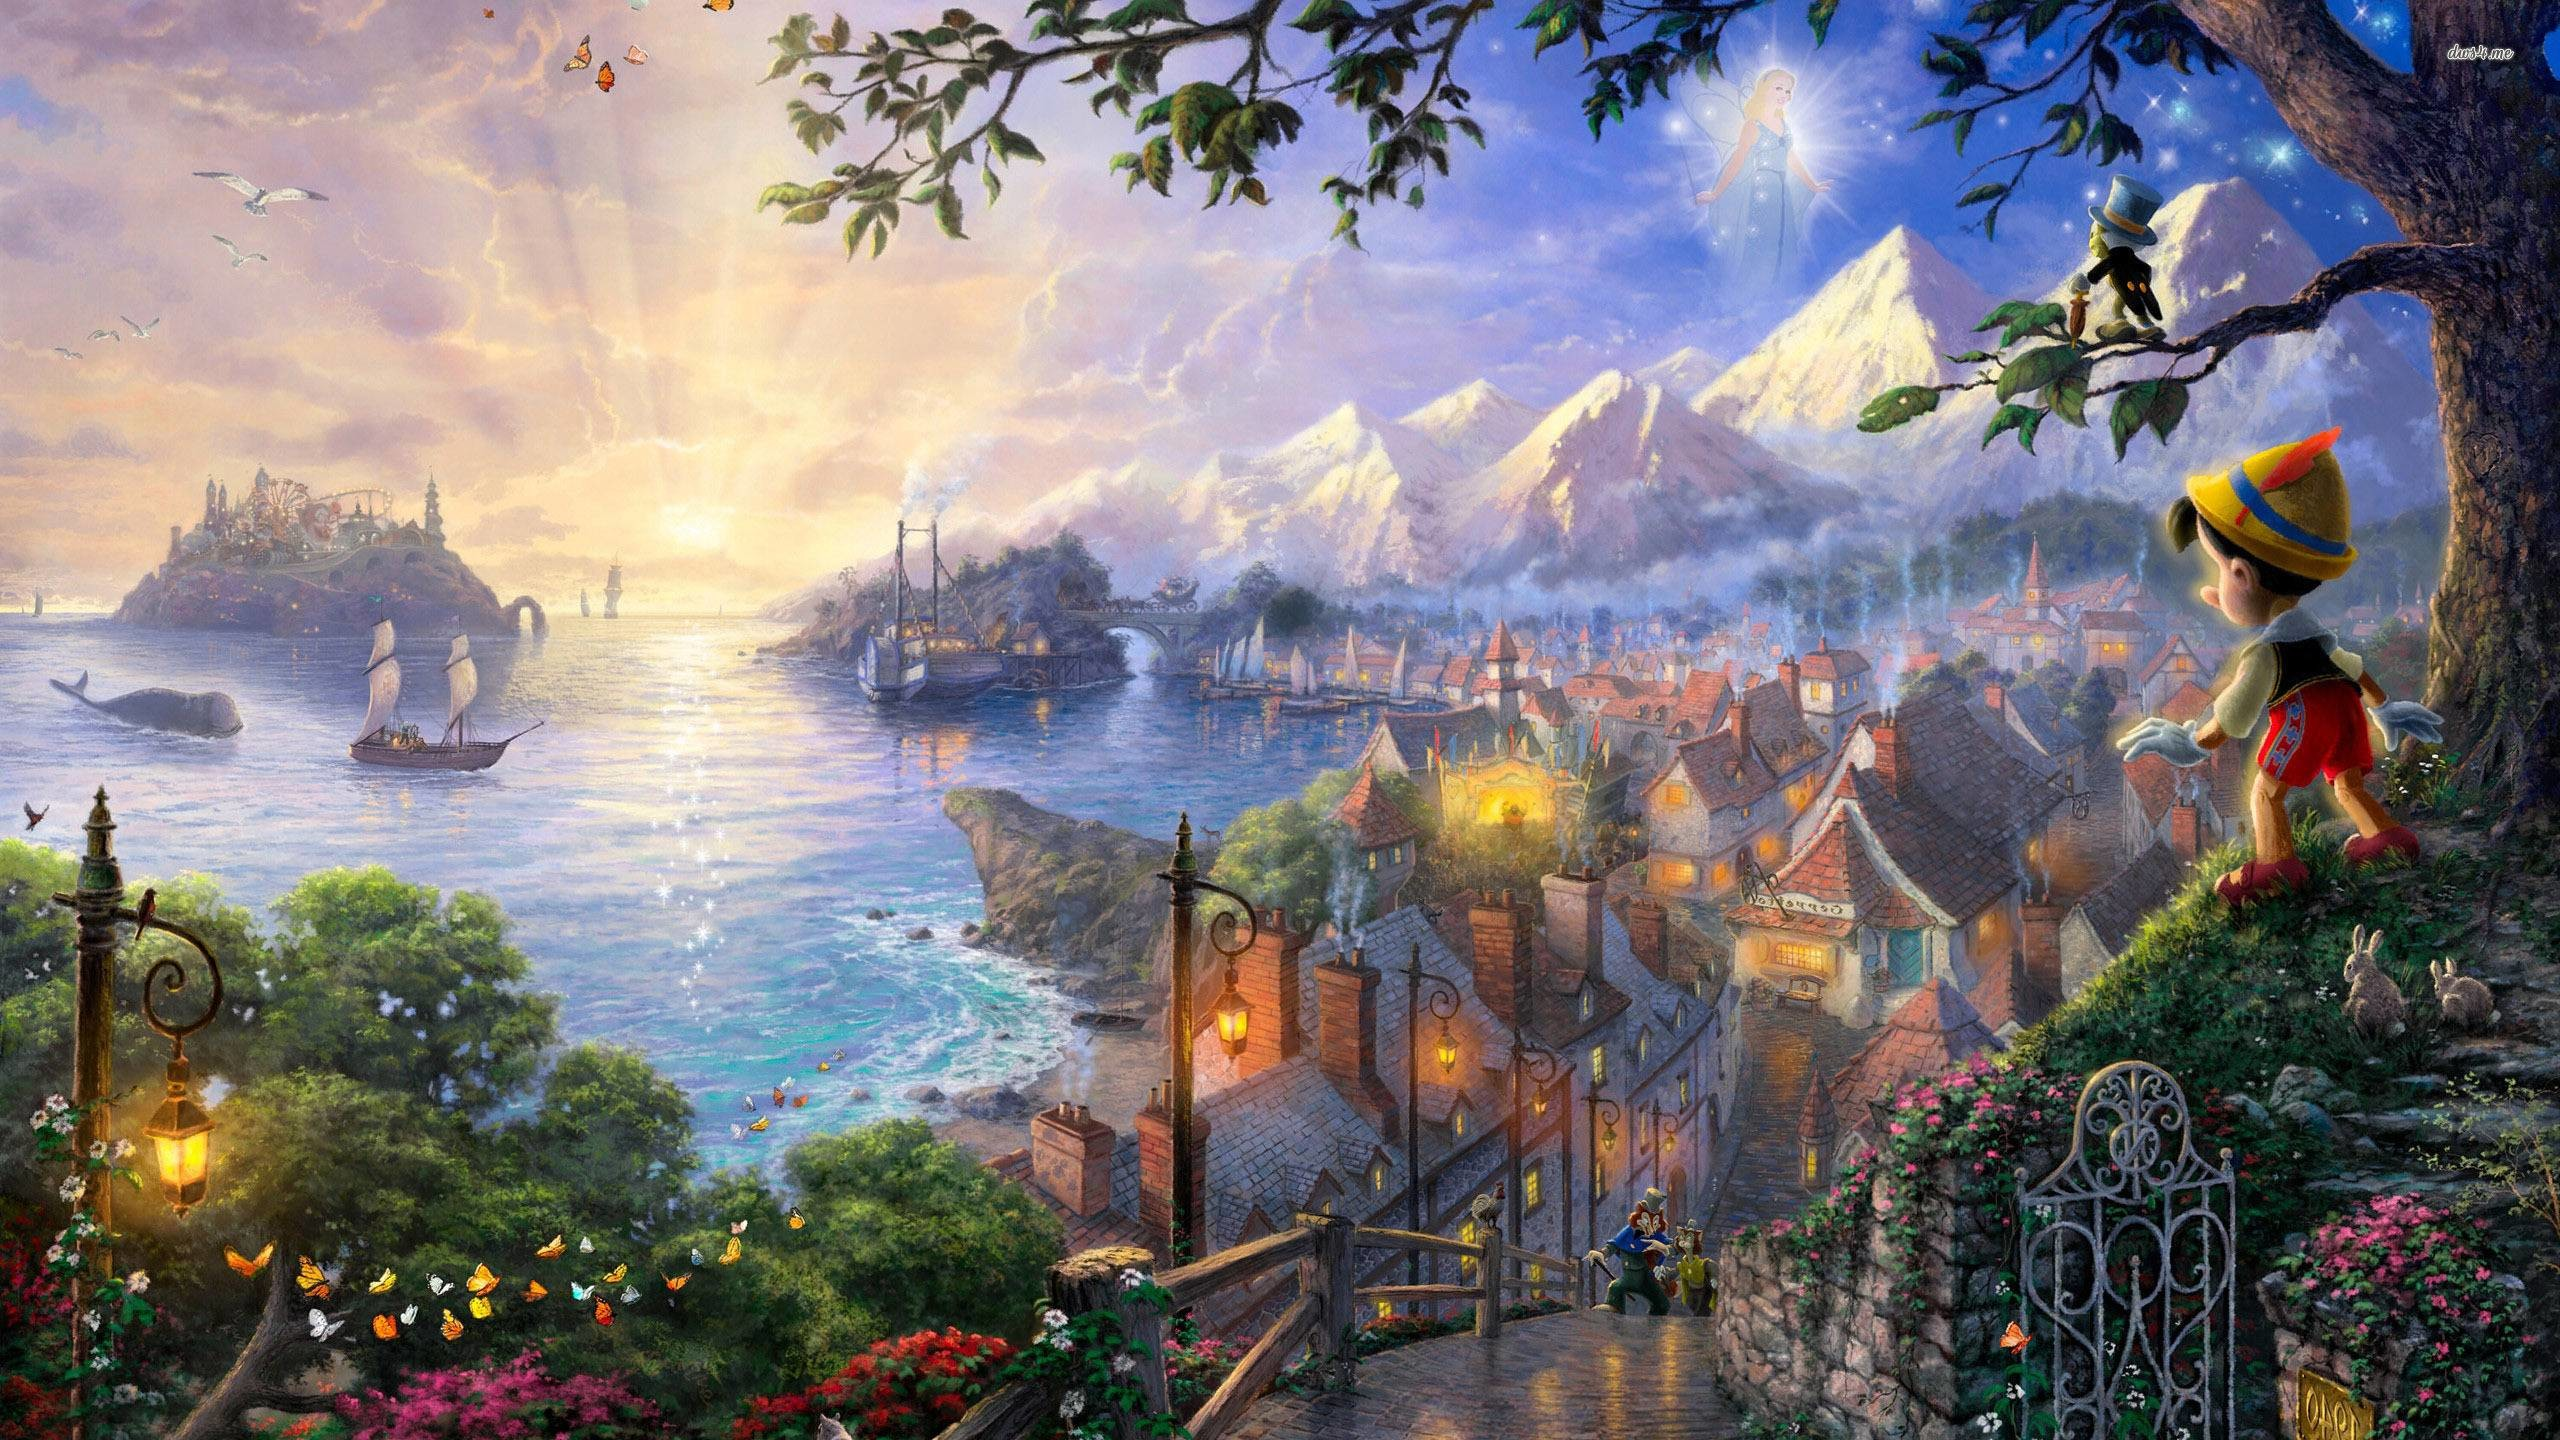 Disney Movies Hd Wallpapers: Pinocchio Wallpapers (71+ Images